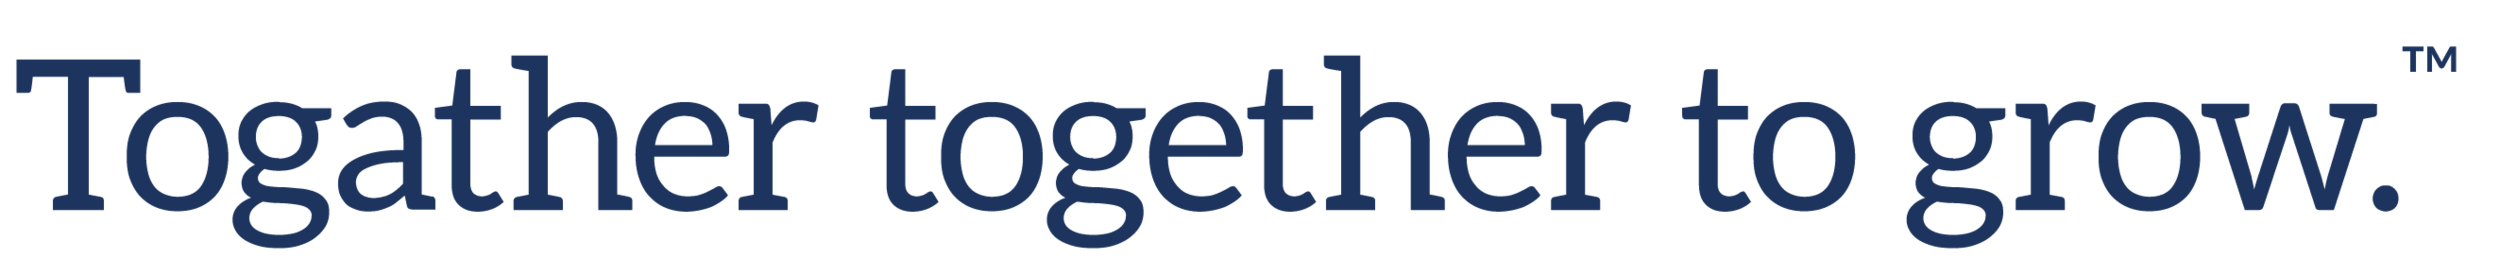 Togather_Web_Graphics_Tagline.png